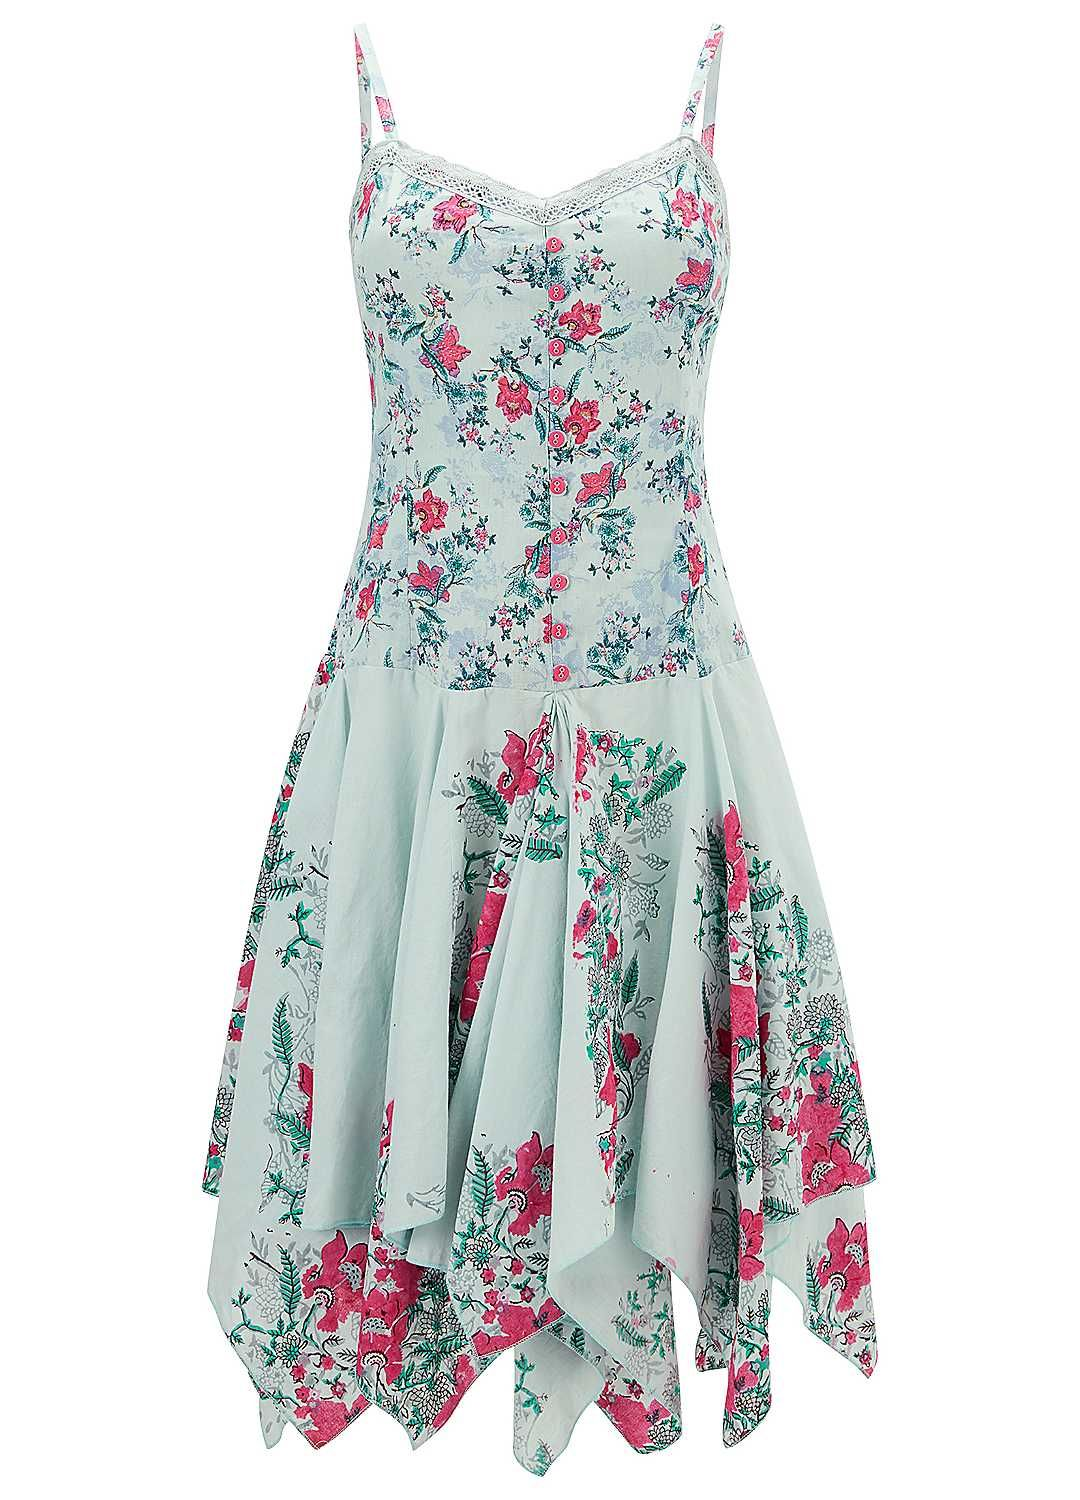 b3d70a450b34e Strappy Layered Floral Summer Dress by Joe Browns | Signature ...